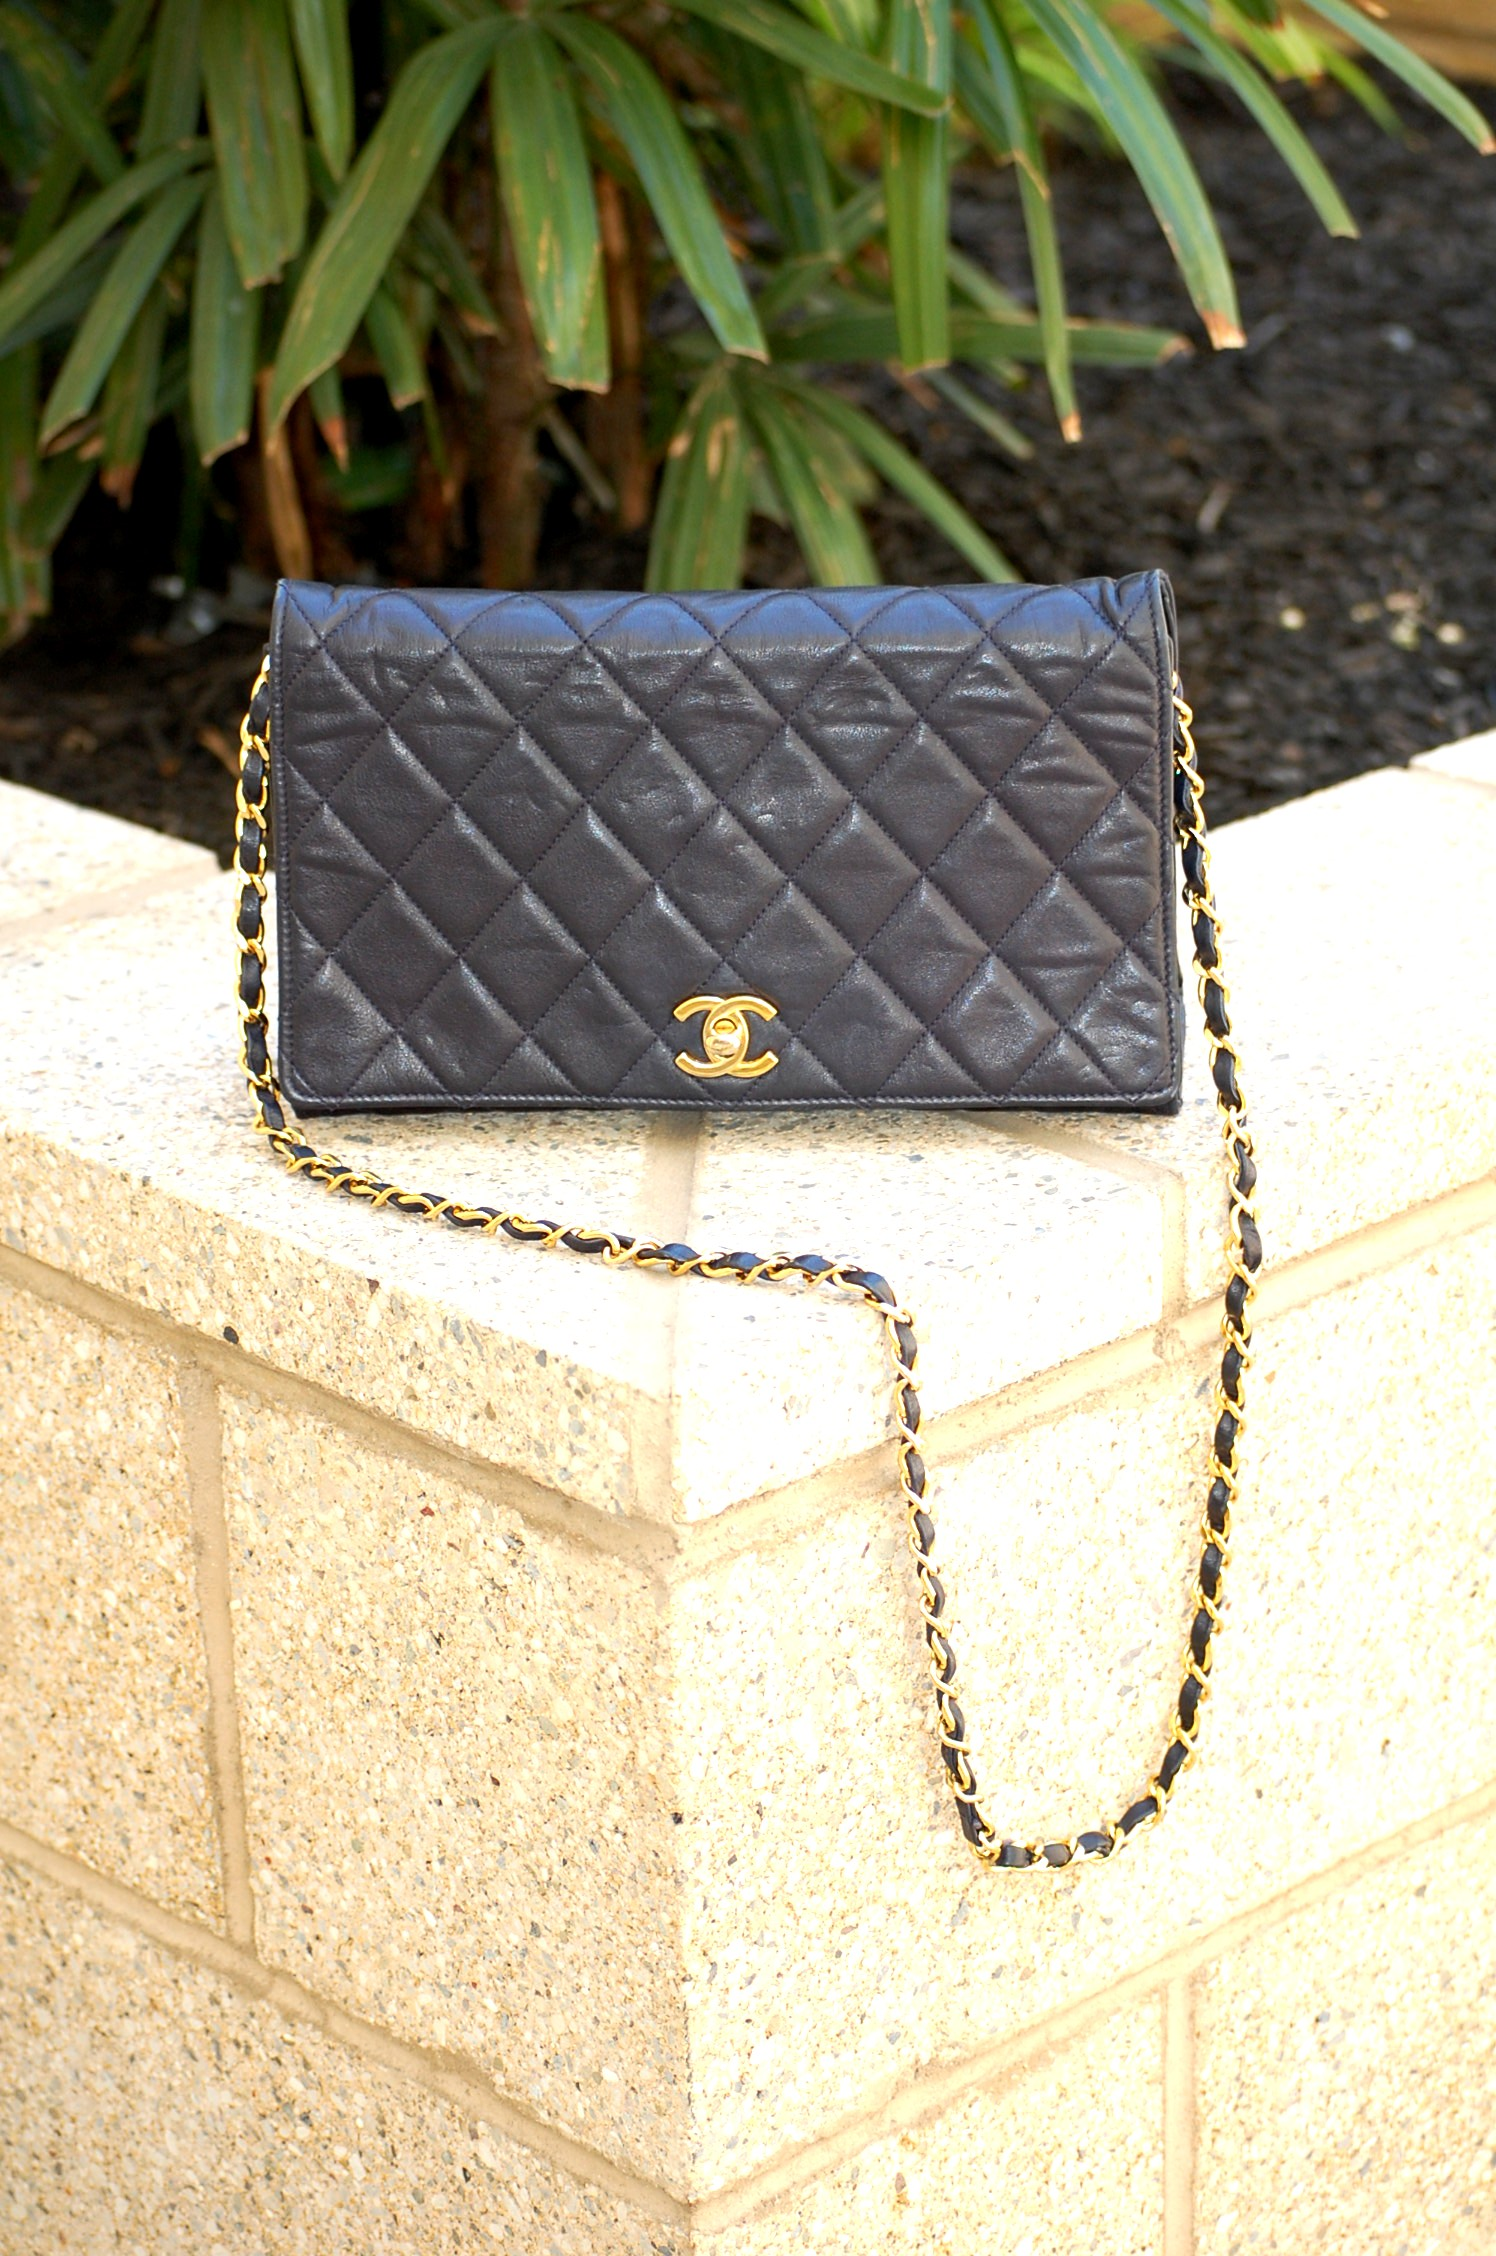 Chanel single flap bag gold weaved chain straps